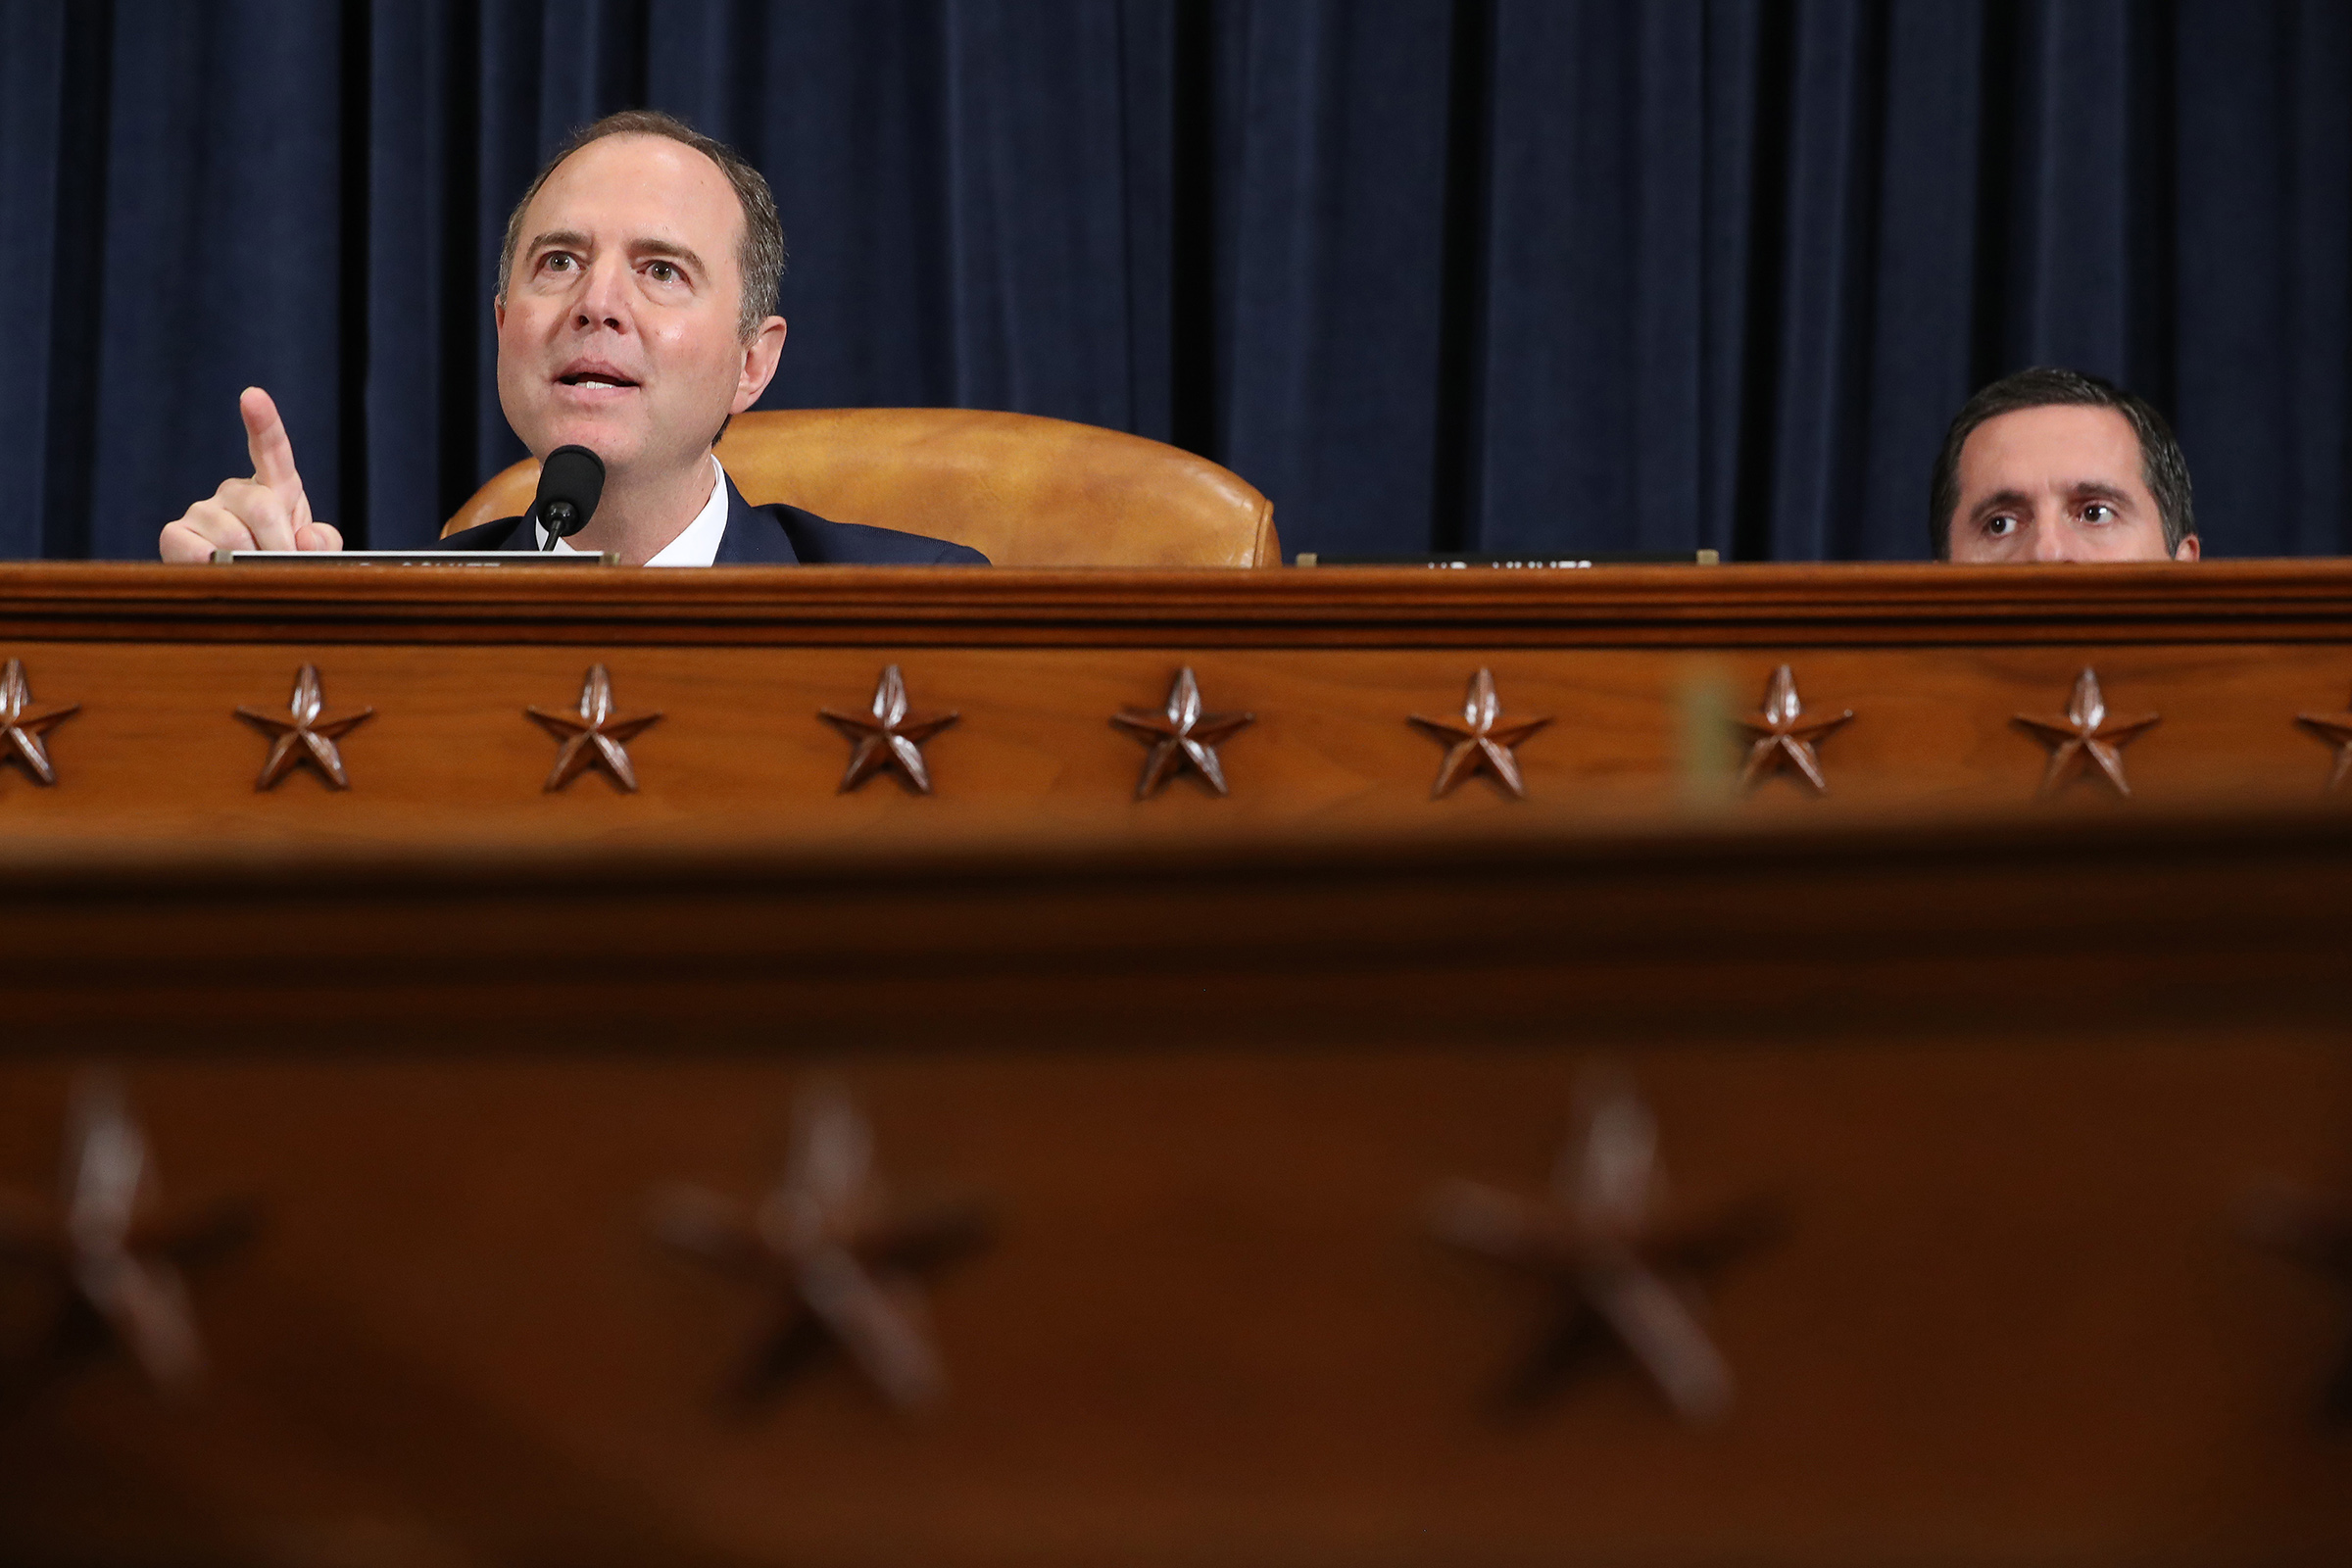 House Intelligence Committee Chairman Rep. Adam Schiff (D-CA) (L) delivers closing remarks as ranking member Rep. Devin Nunes (R-CA) listens at the end of an impeachment inquiry hearing on Capitol Hill on Nov. 21, 2019 in Washington, DC.